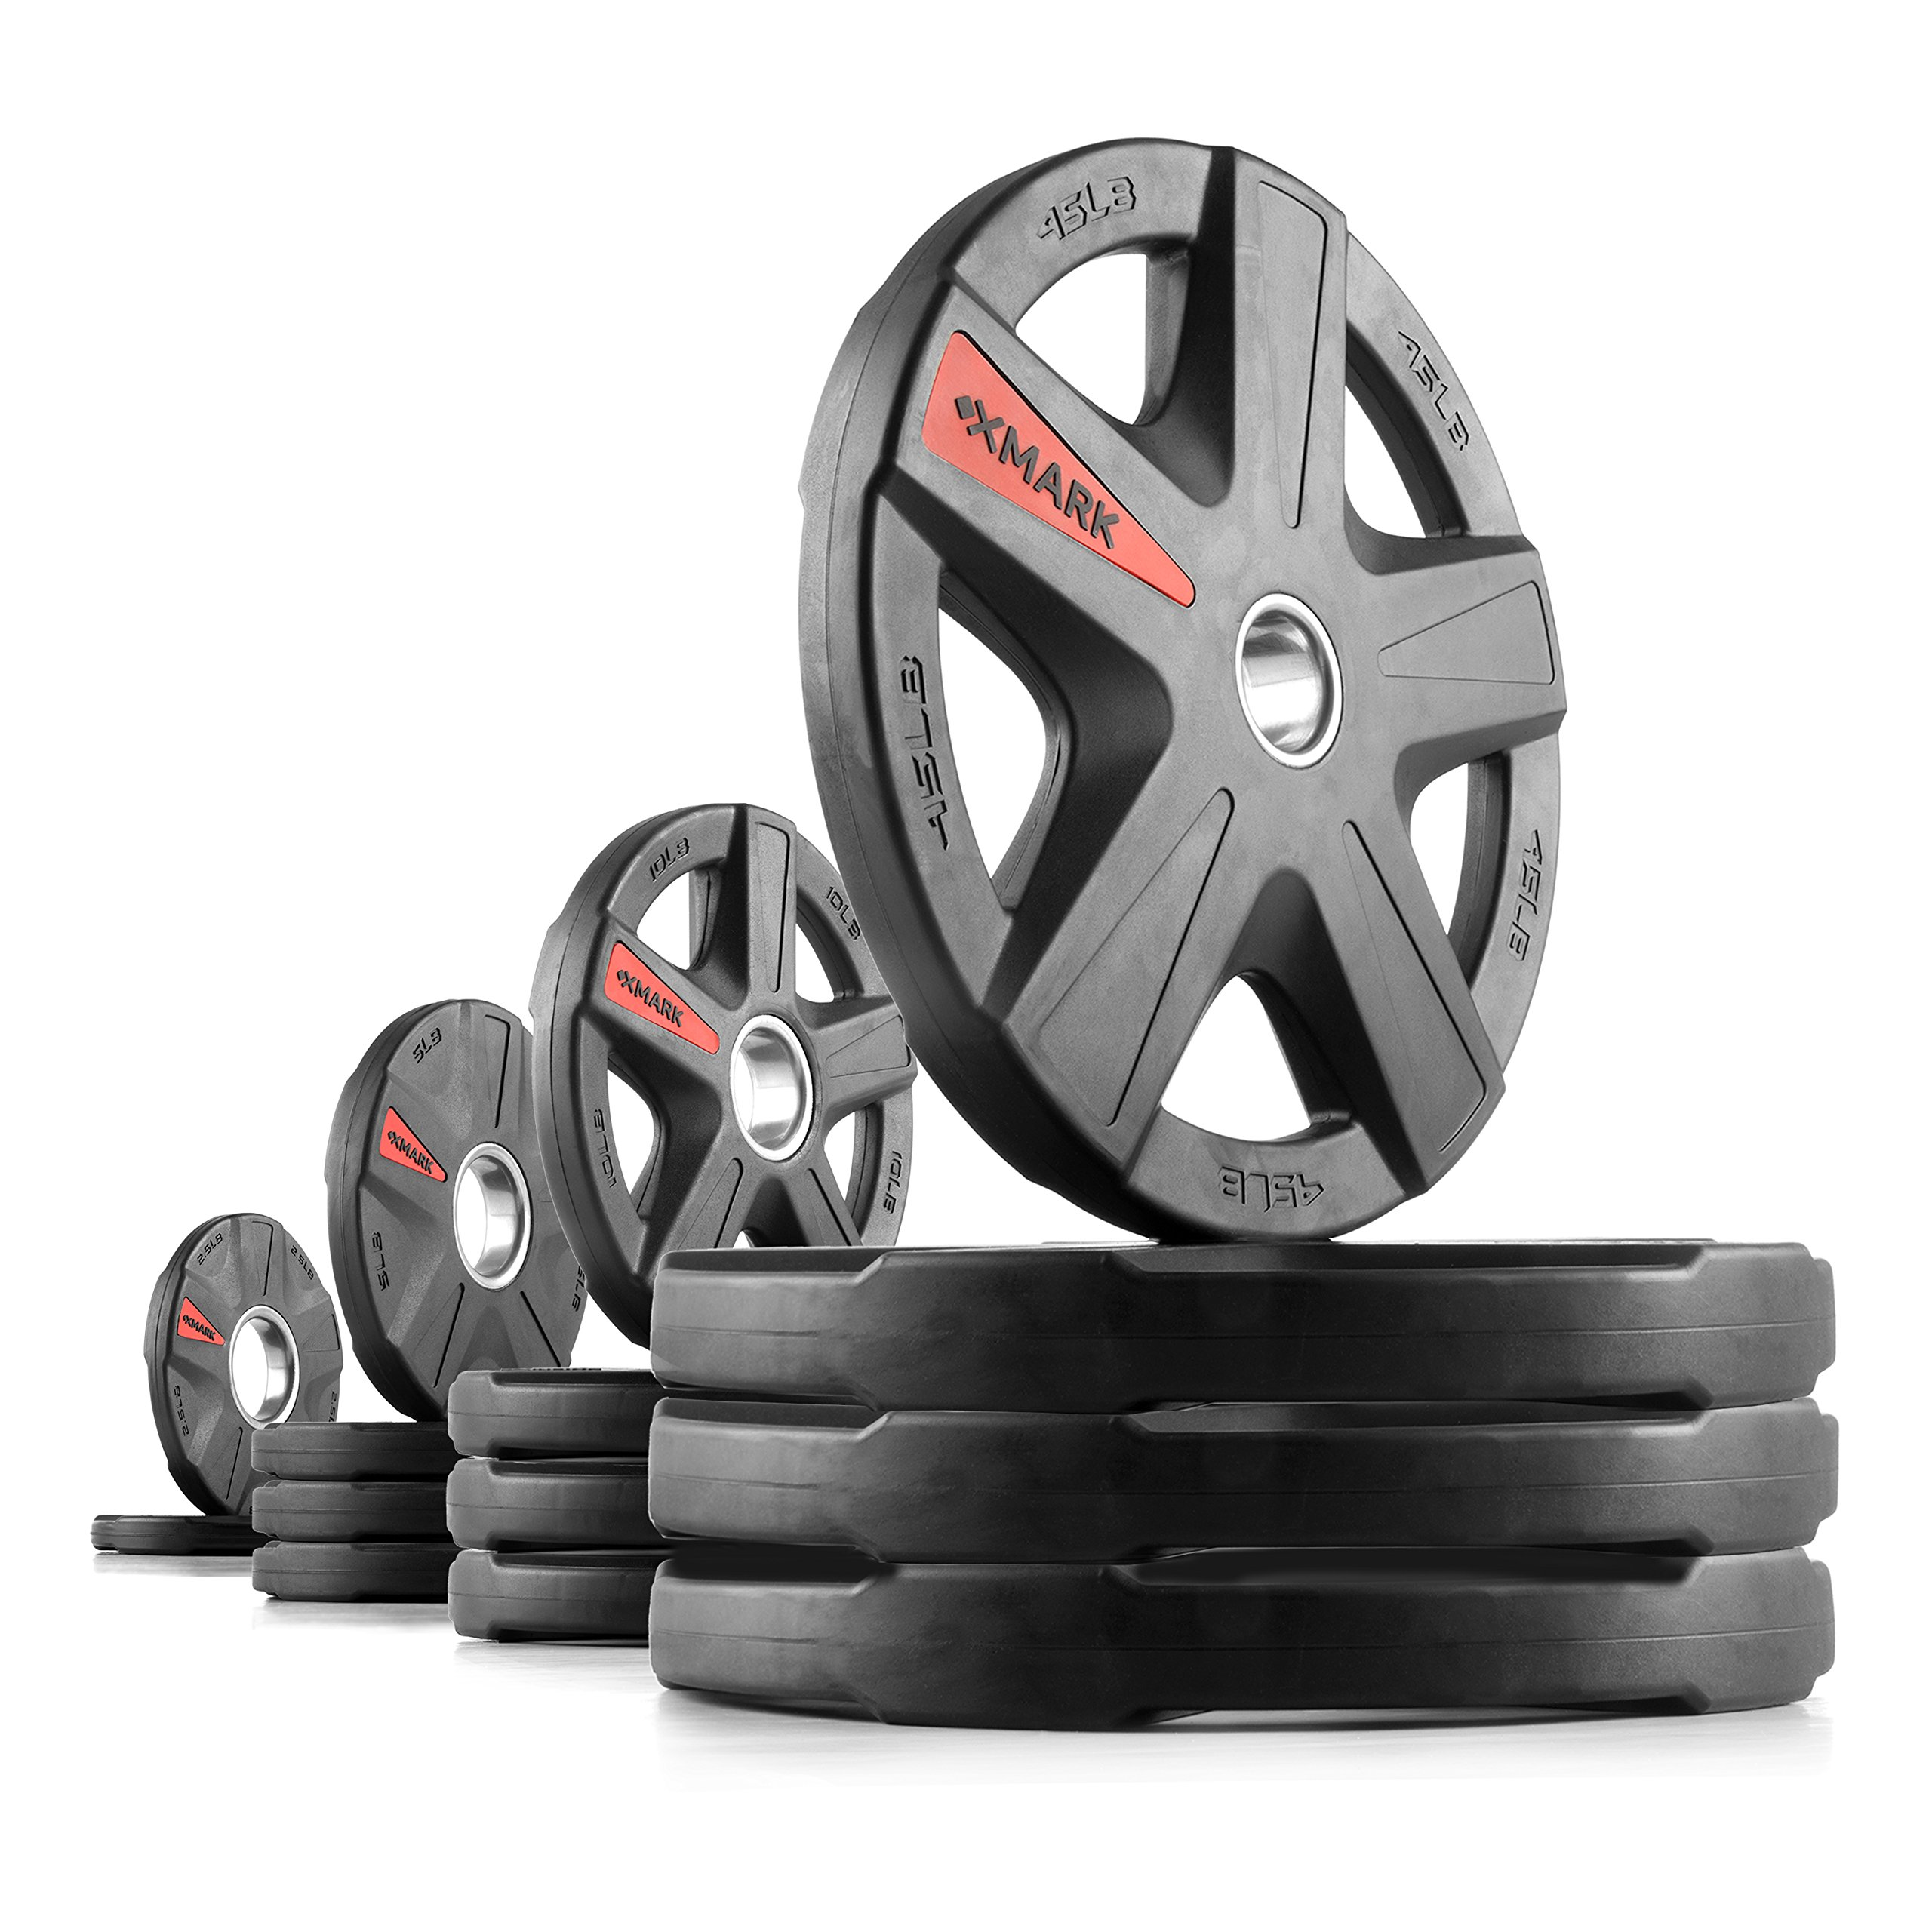 XMark Texas Star 315 lb Set Olympic Plates, Patented Design, One-Year Warranty, Olympic Weight Plates